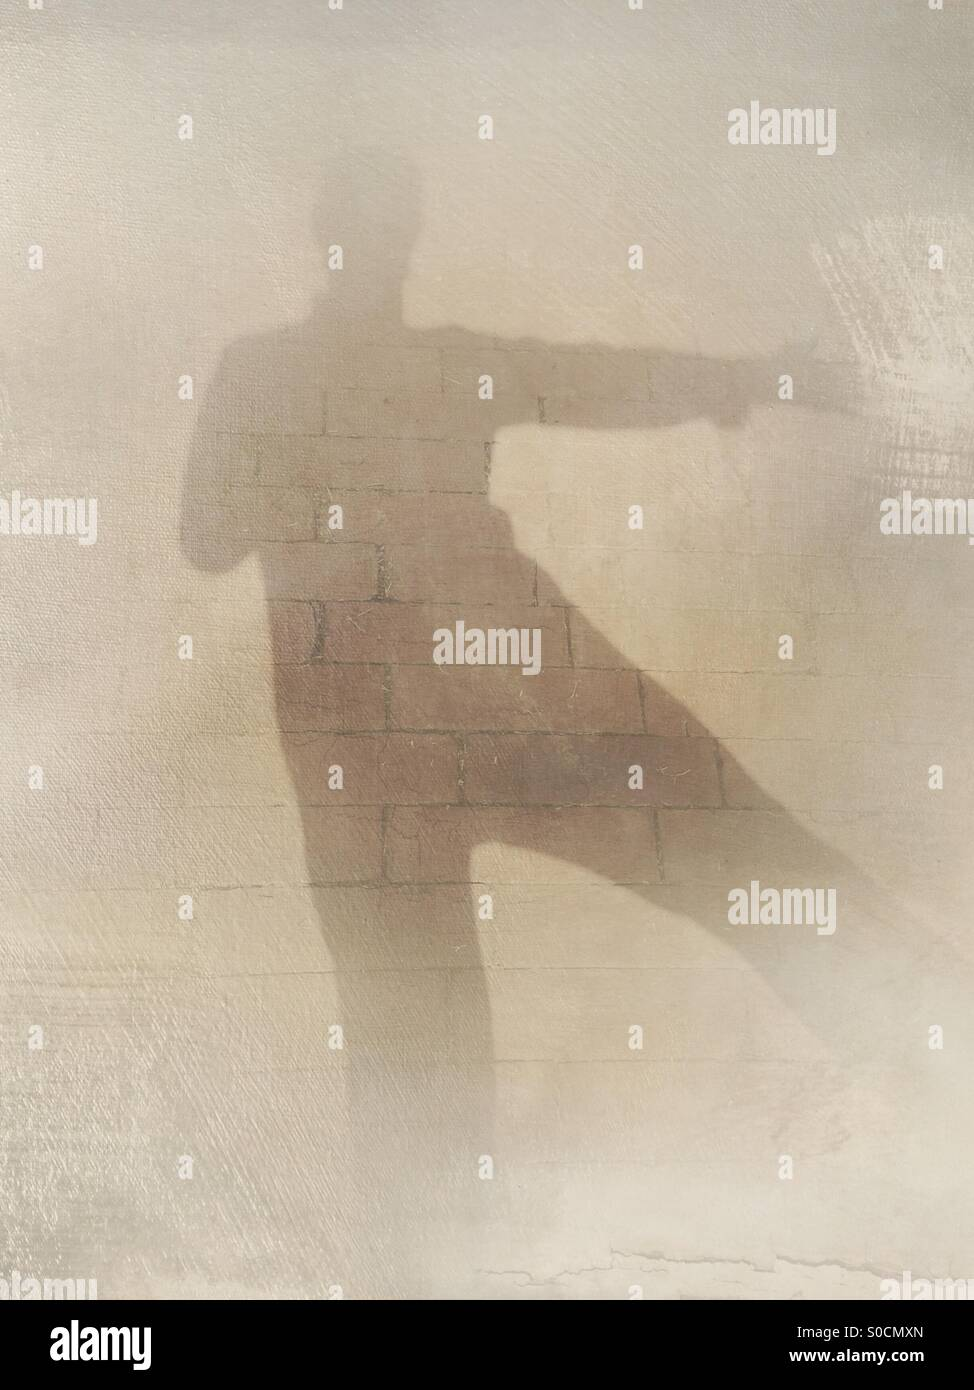 Shadow silhouette selfie of person with arm and leg extended, with paint overlay to gradually erase subject. Concepts - Stock Image